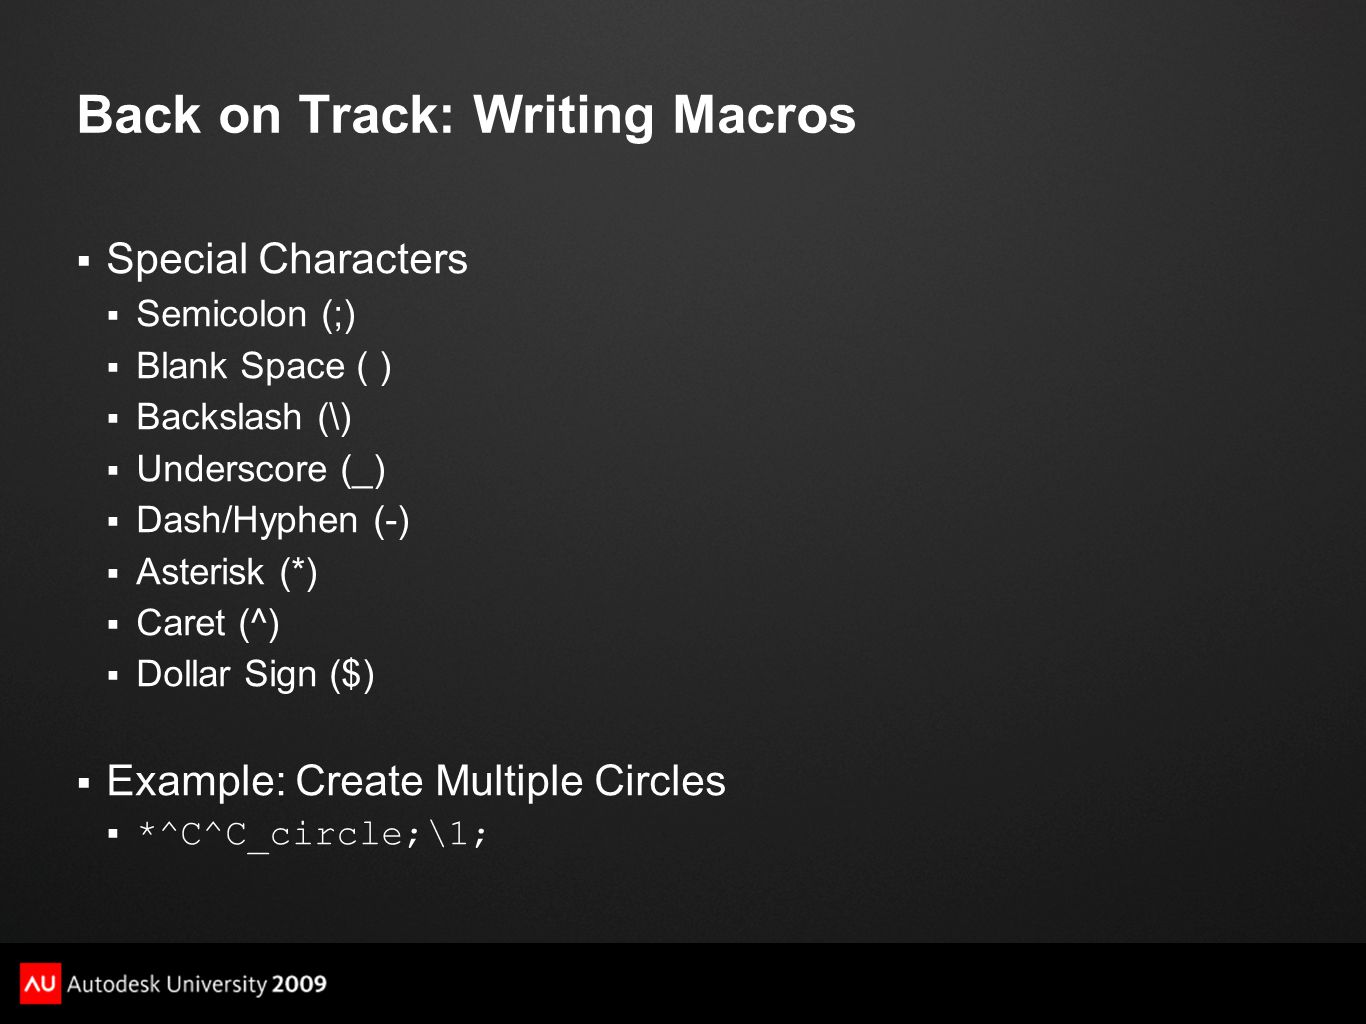 Back on Track: Writing Macros